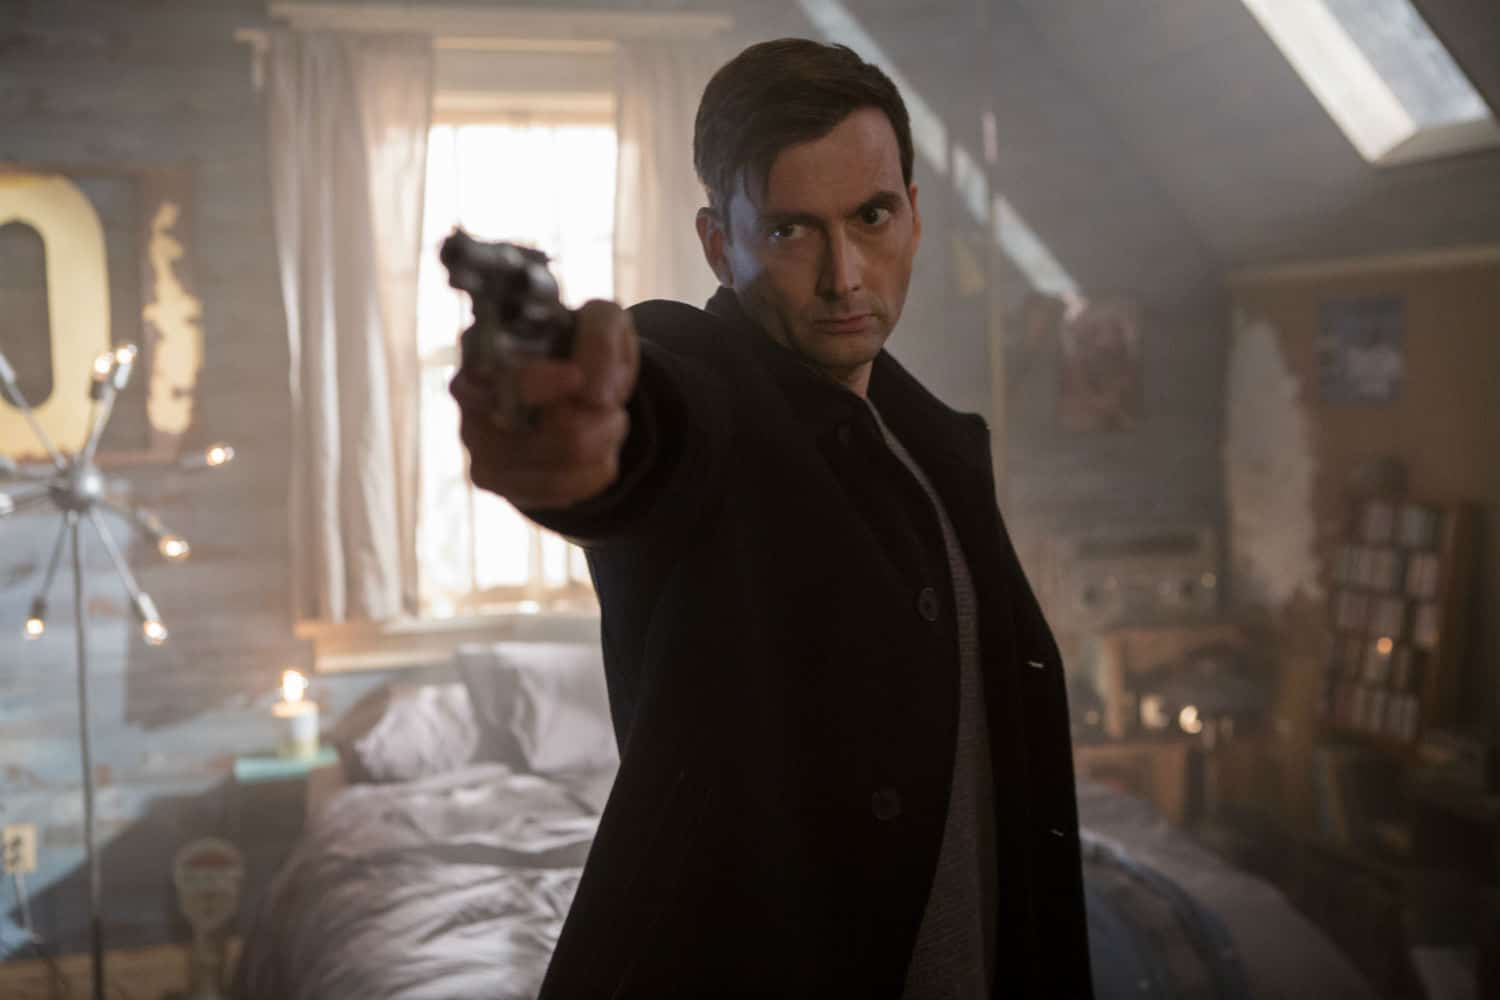 Bad Samaritan Review – That's How You Save Somebody - OC Movie Reviews - Movie Reviews, Movie News, Documentary Reviews, Short Films, Short Film Reviews, Trailers, Movie Trailers, Interviews, film reviews, film news, hollywood, indie films, documentaries